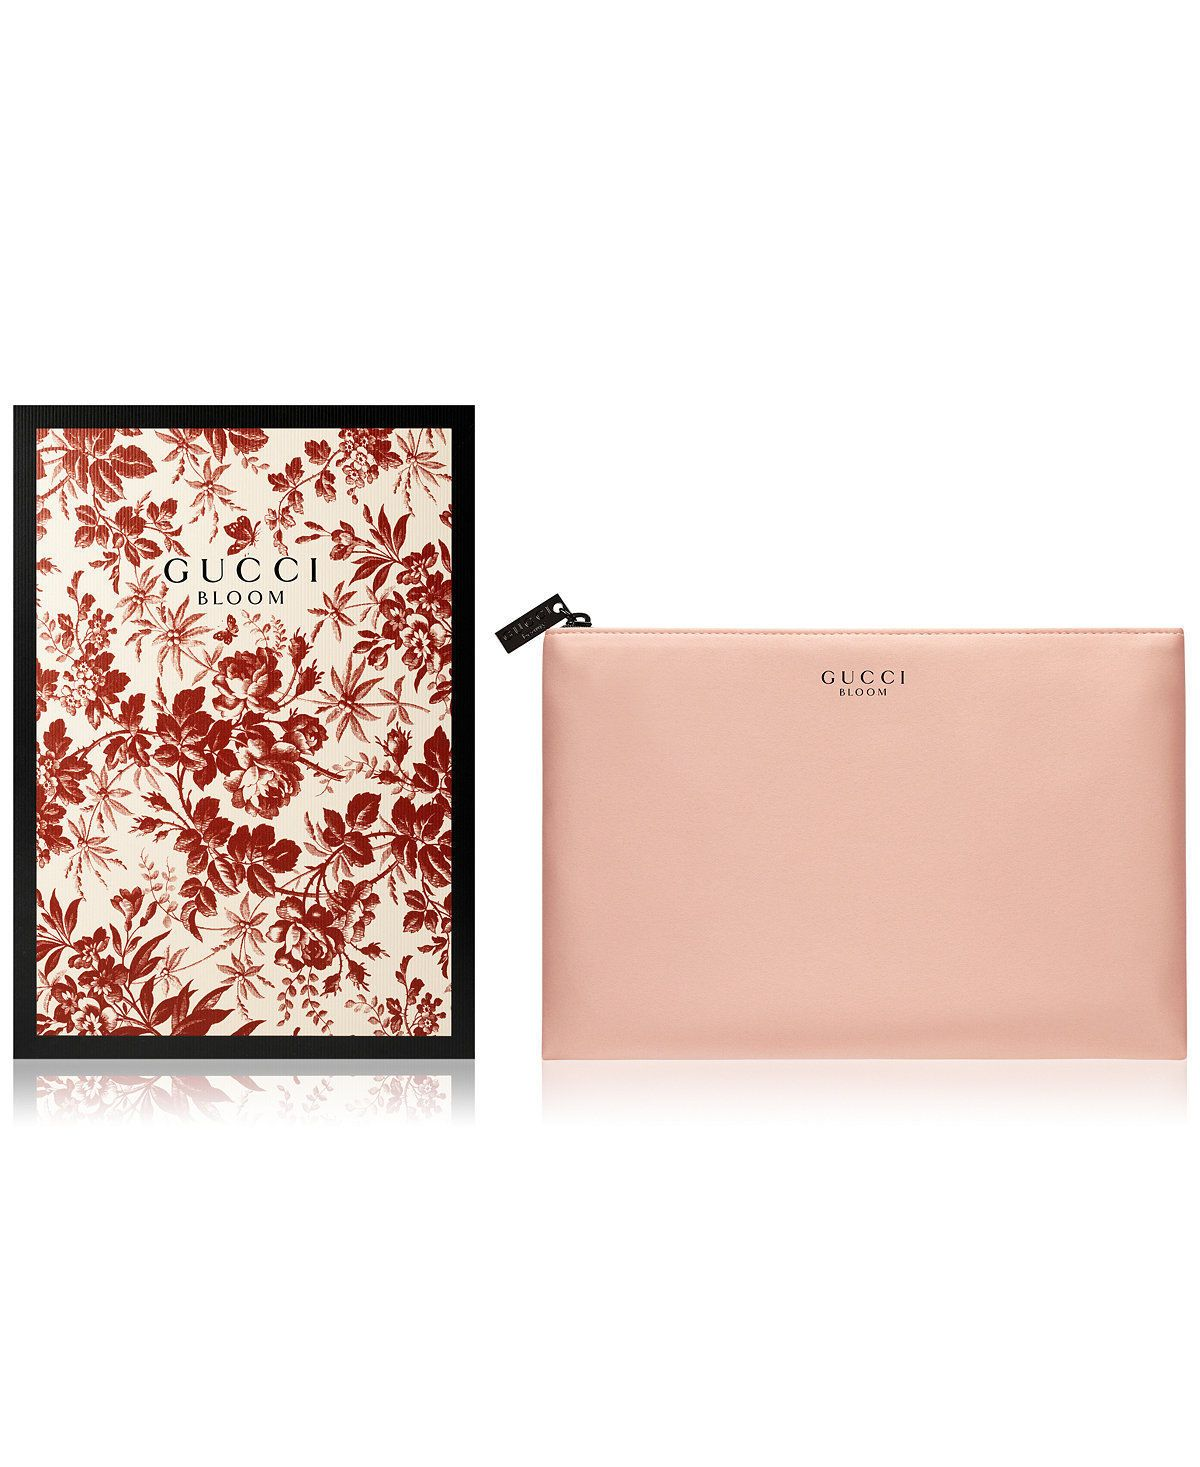 654d9c3b12b Gucci Bloom Pouch Cosmetic Hand Bag Makeup Case Clutch blush pink nude in  BOX